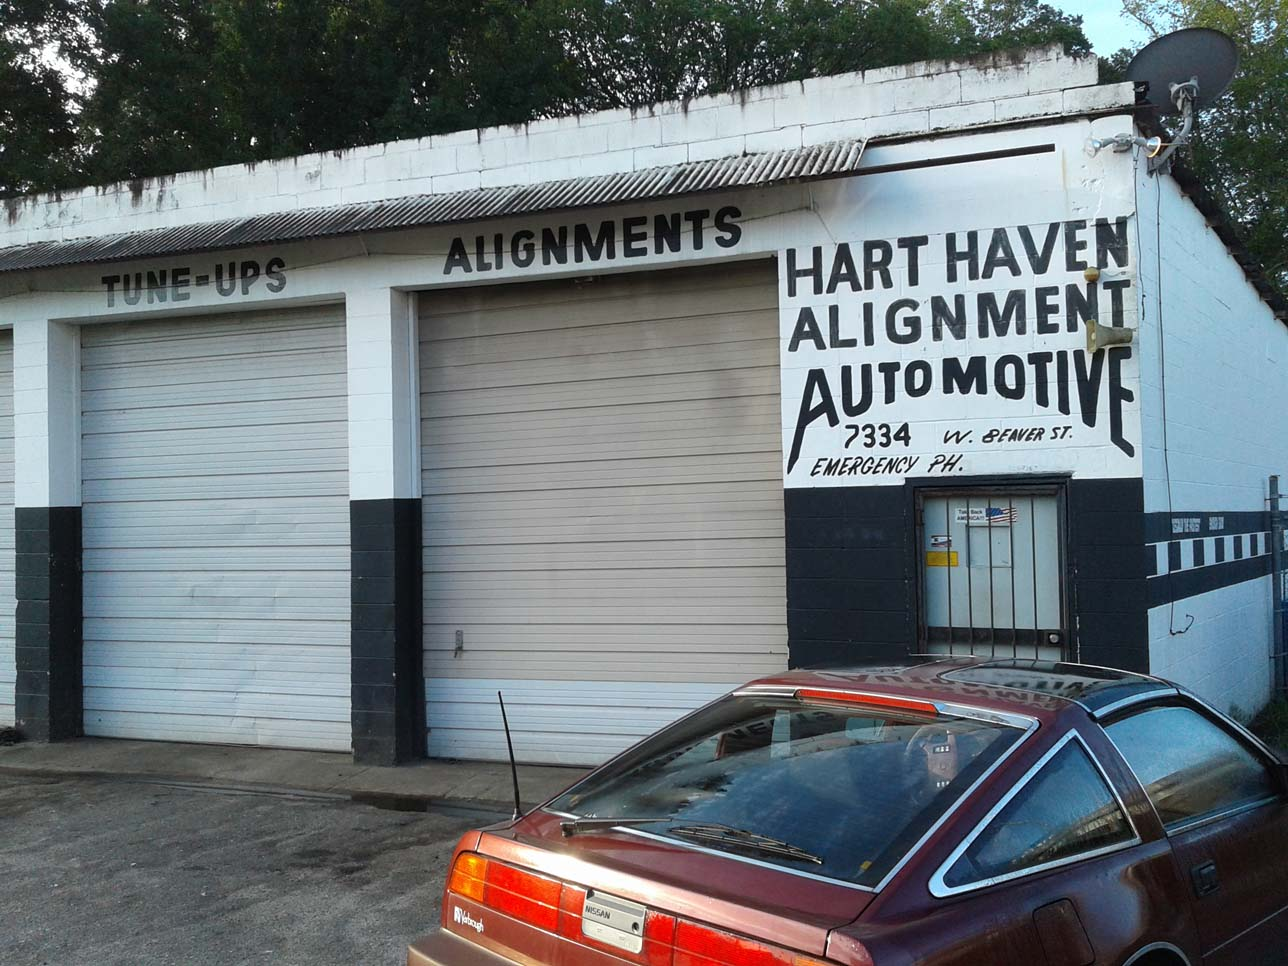 Hart Haven Automotive